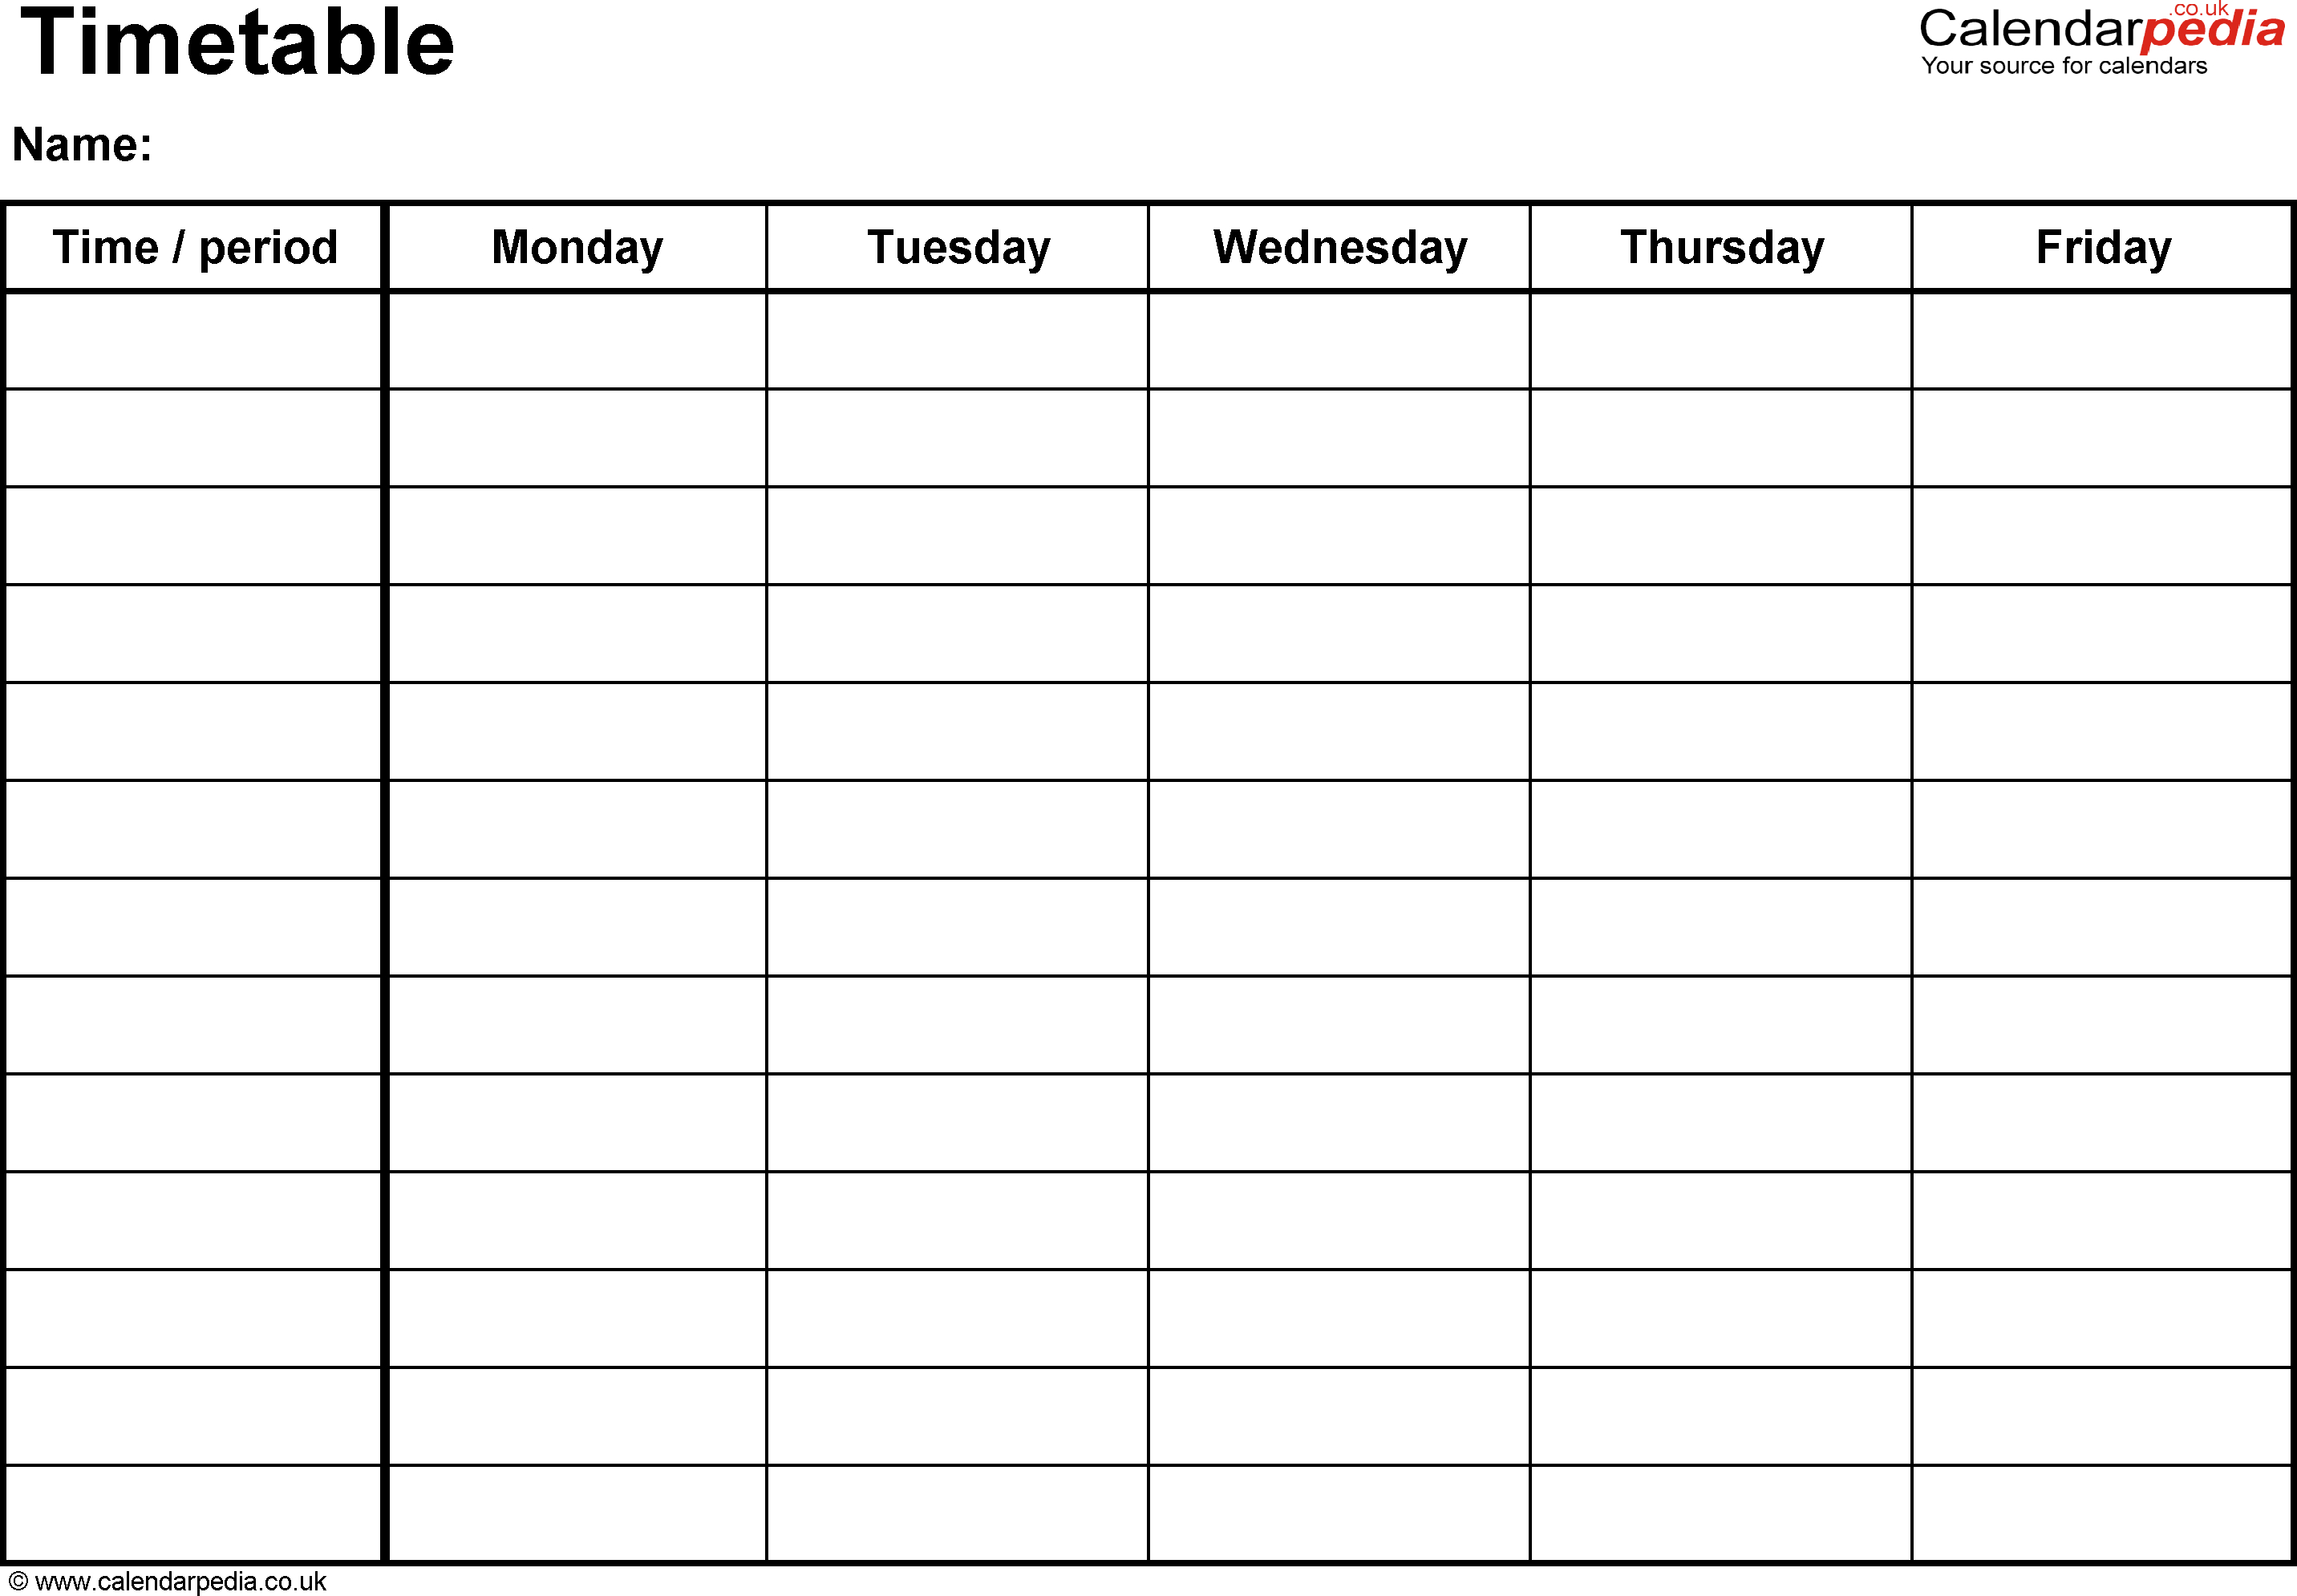 003 Timetable Monday Friday Template Ideas Weekly Schedule